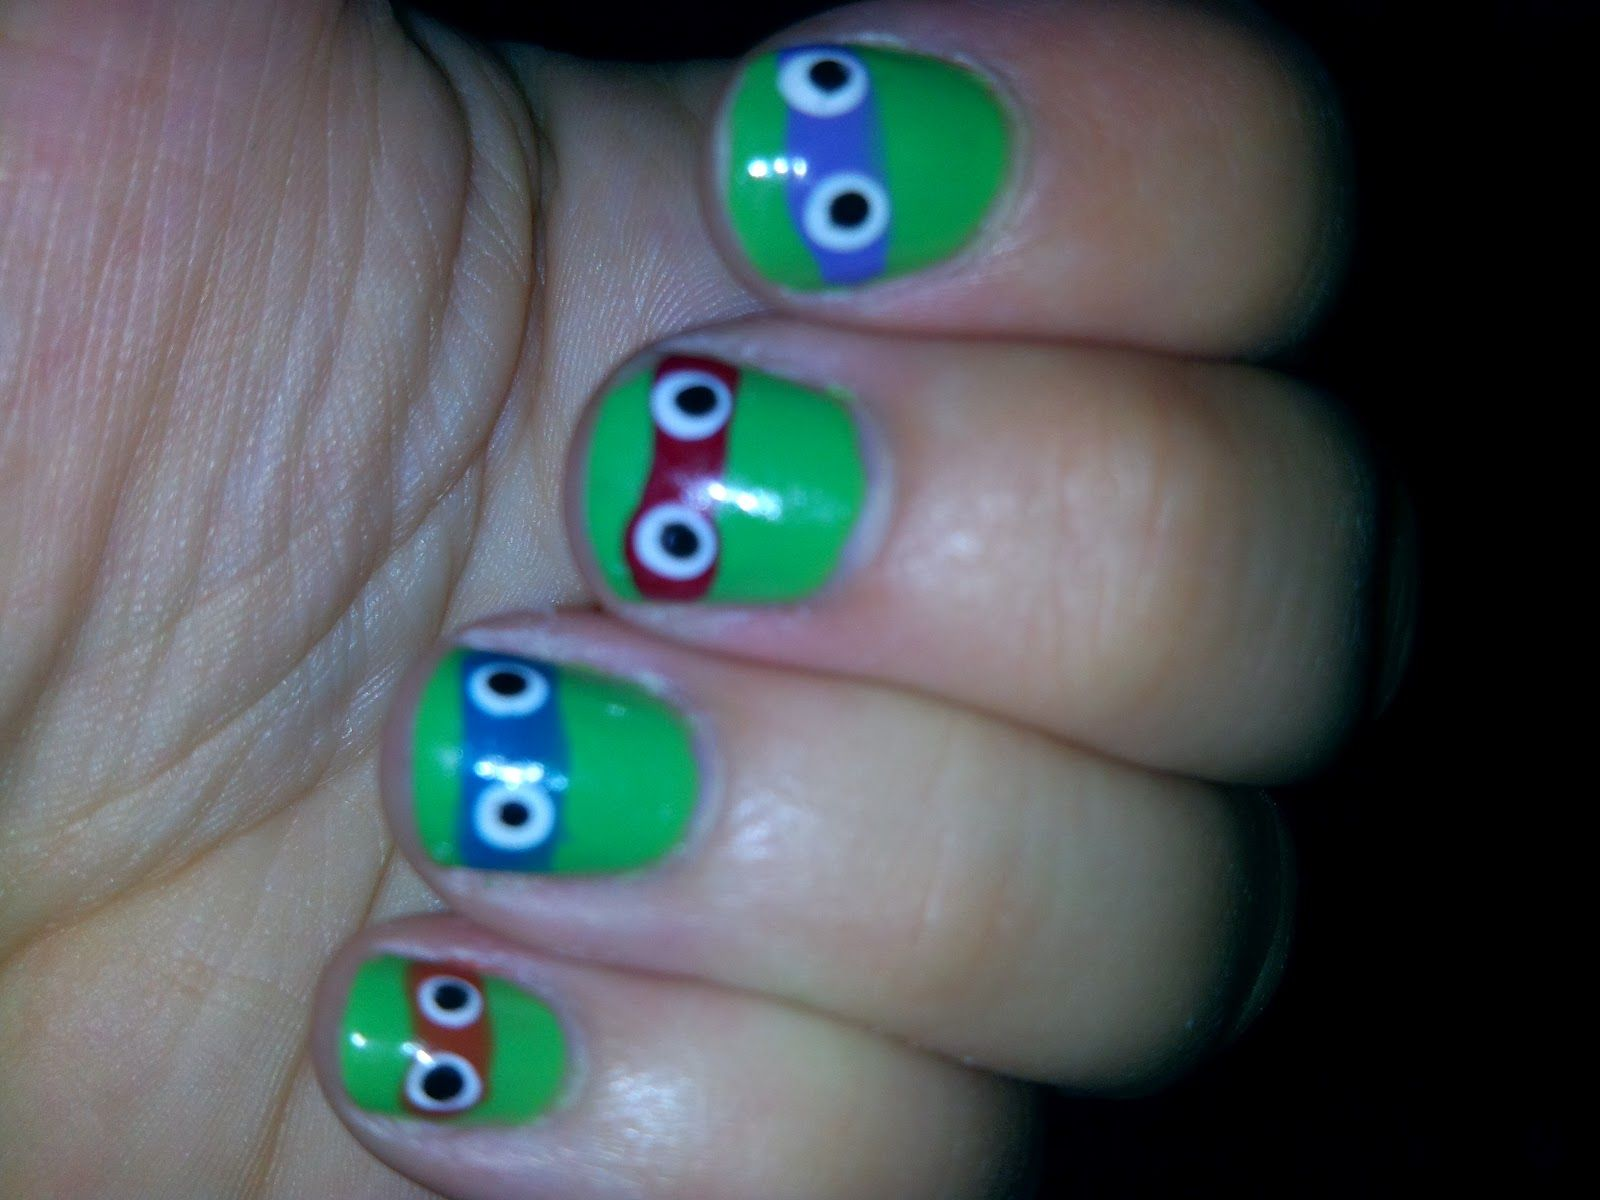 Ninja turtle nails | Nail art | Pinterest | Ninja turtle nails ...